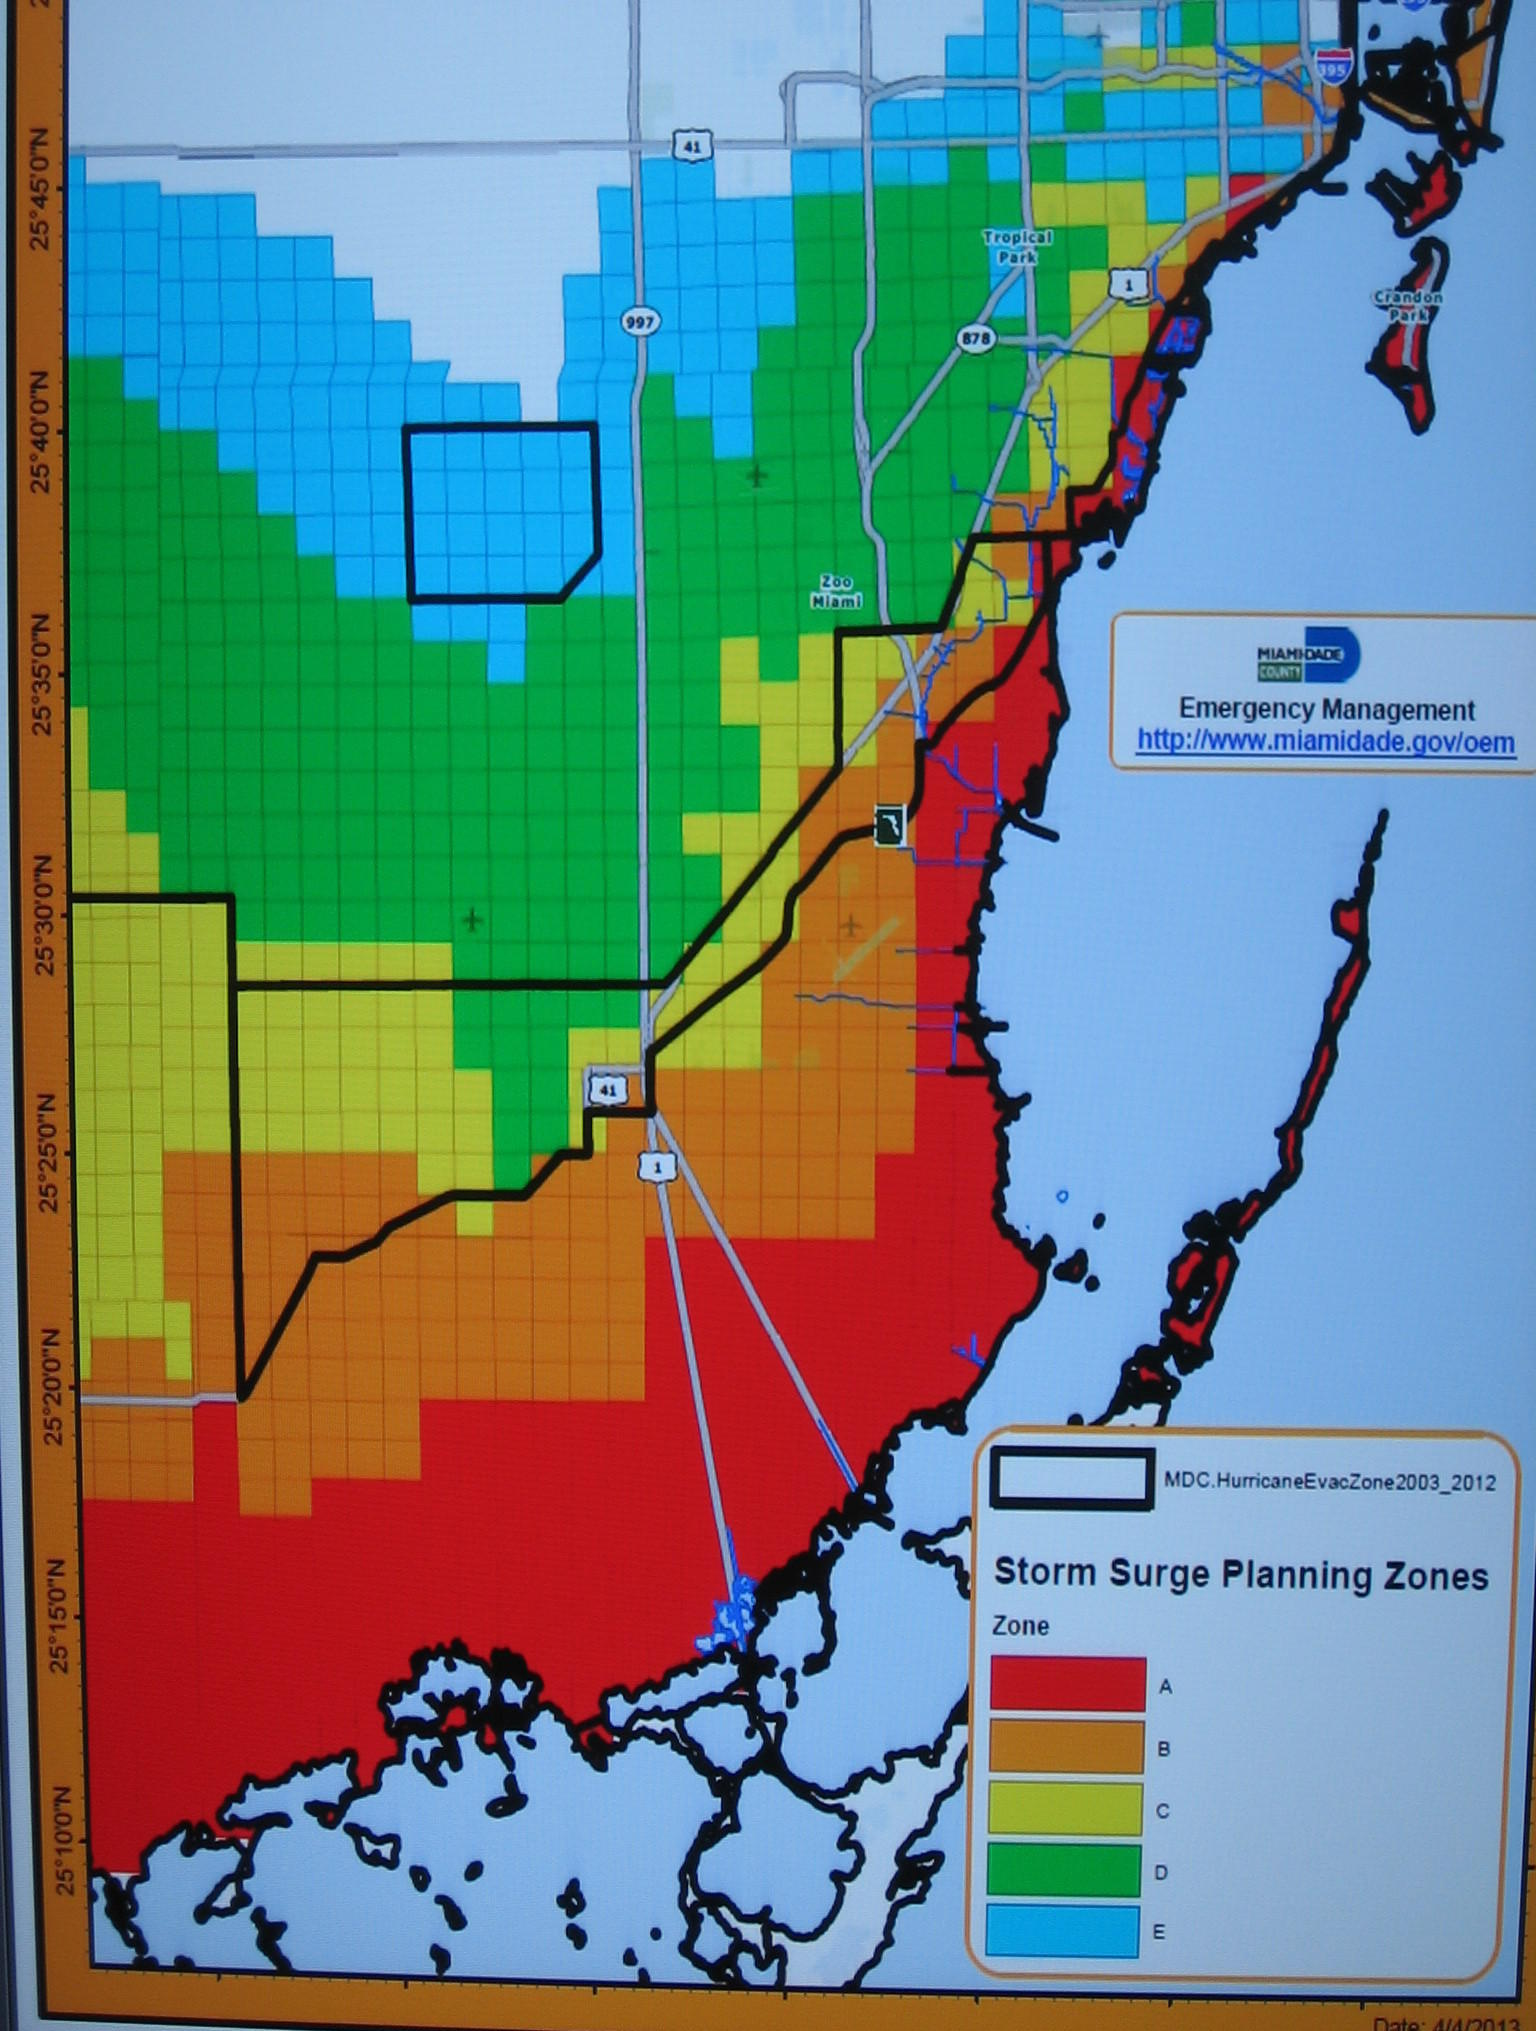 miami dade flood zone map Remapping Our Awareness Of Storm Surge Danger Wuwm miami dade flood zone map